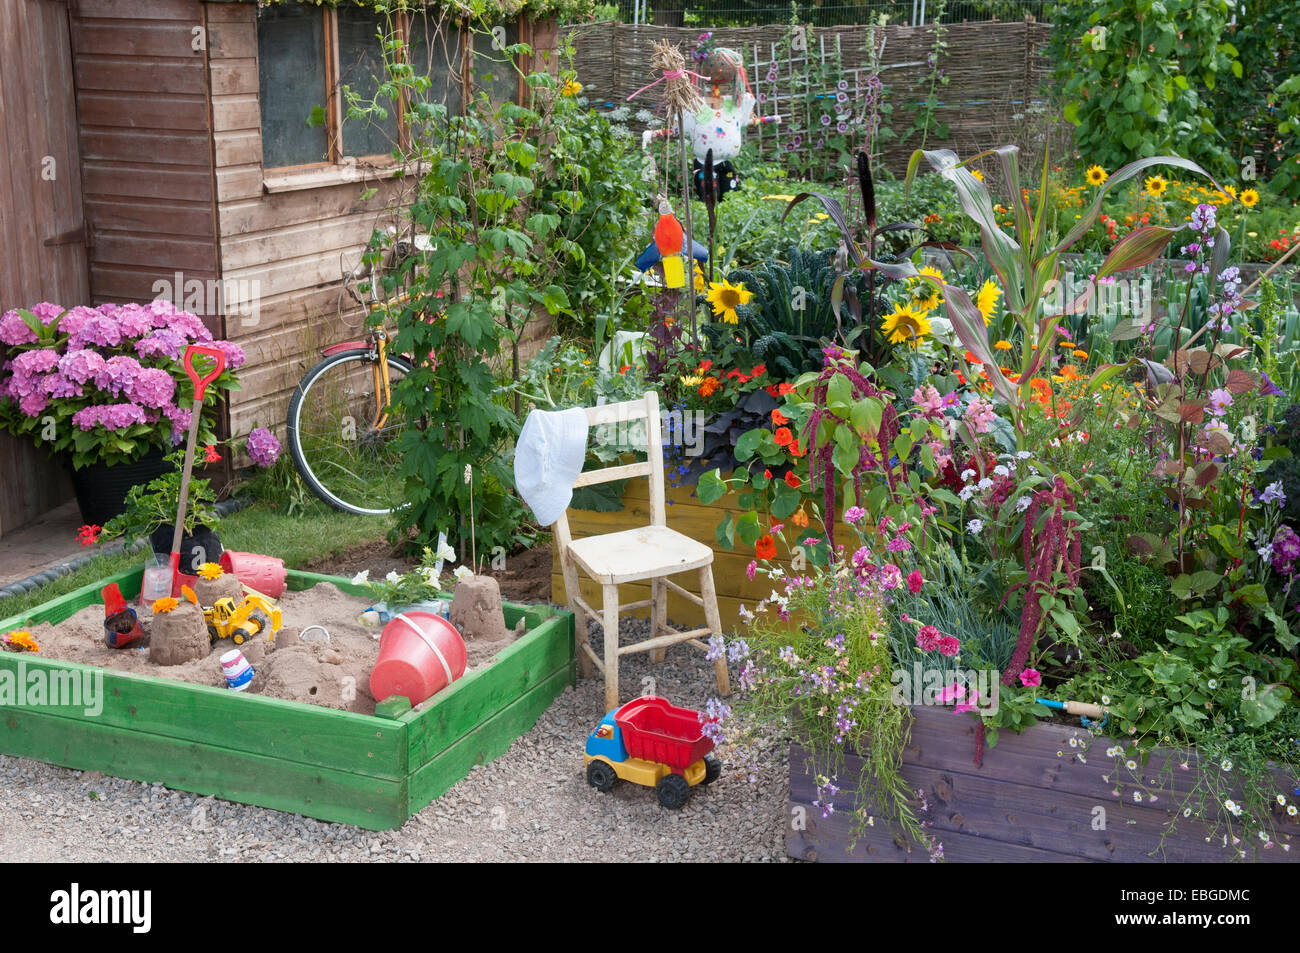 childrens play area in a busy garden of raised flower beds Stock ...